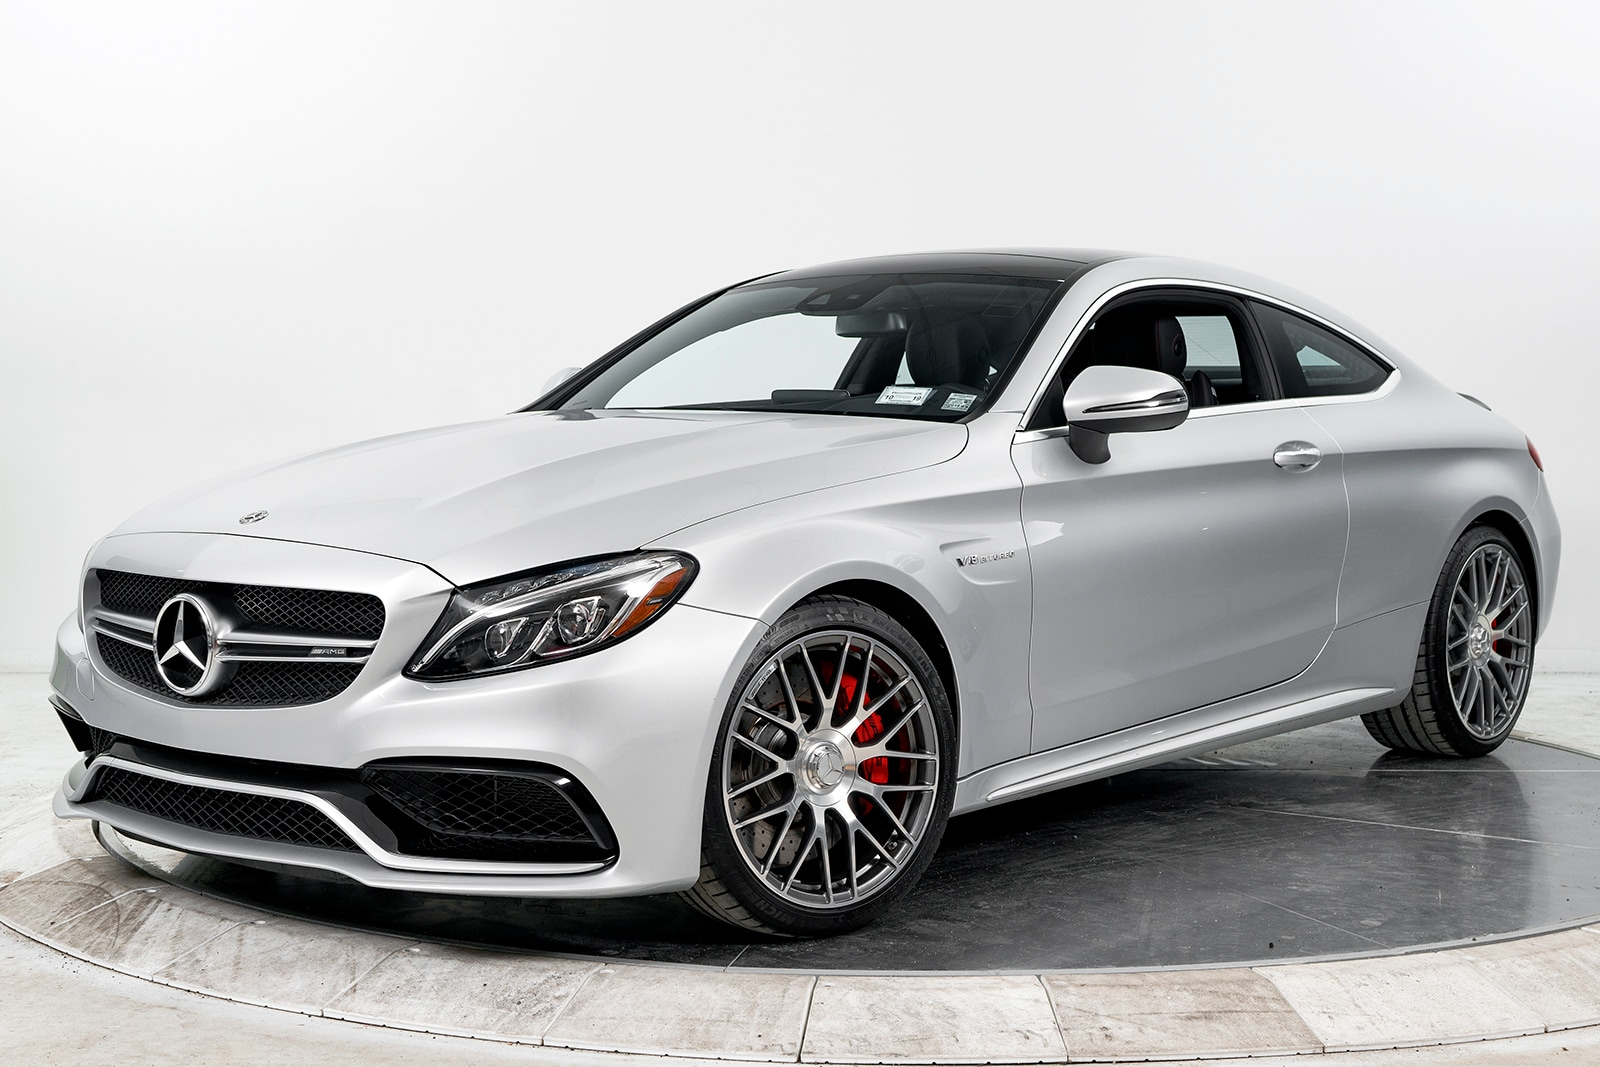 Used 2018 MERCEDES-BENZ C63 S AMG COUPE For Sale